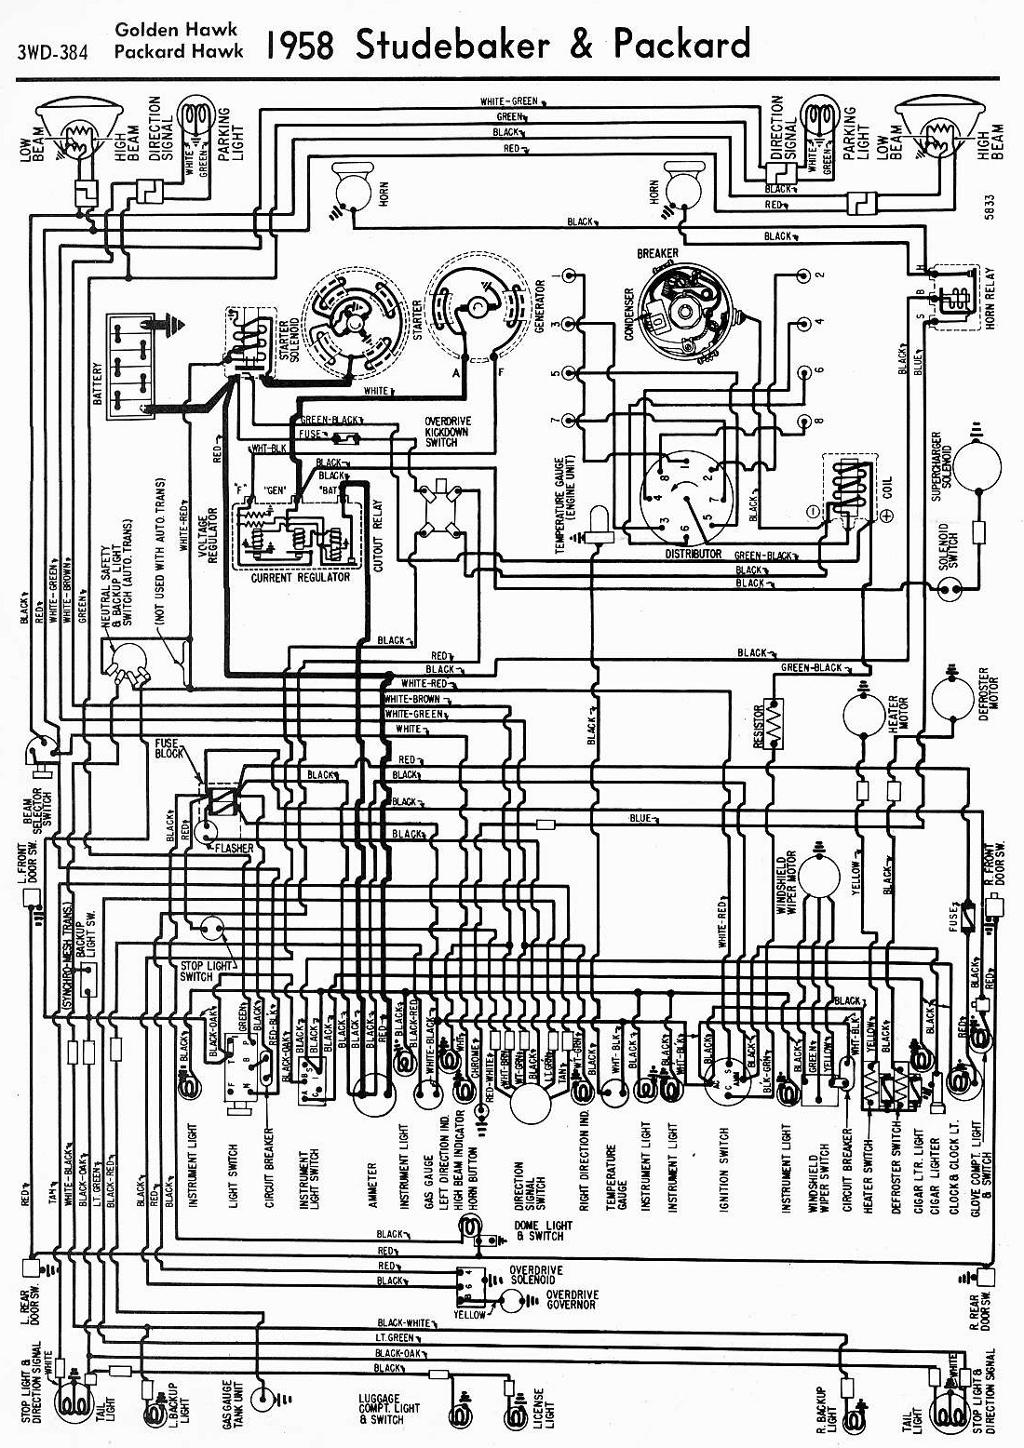 1951 Packard Wiring Diagram Online Manuual Of Jeep Comanche Schematic 1949 Diagrams Img Rh 46 Andreas Bolz De 1948 1953